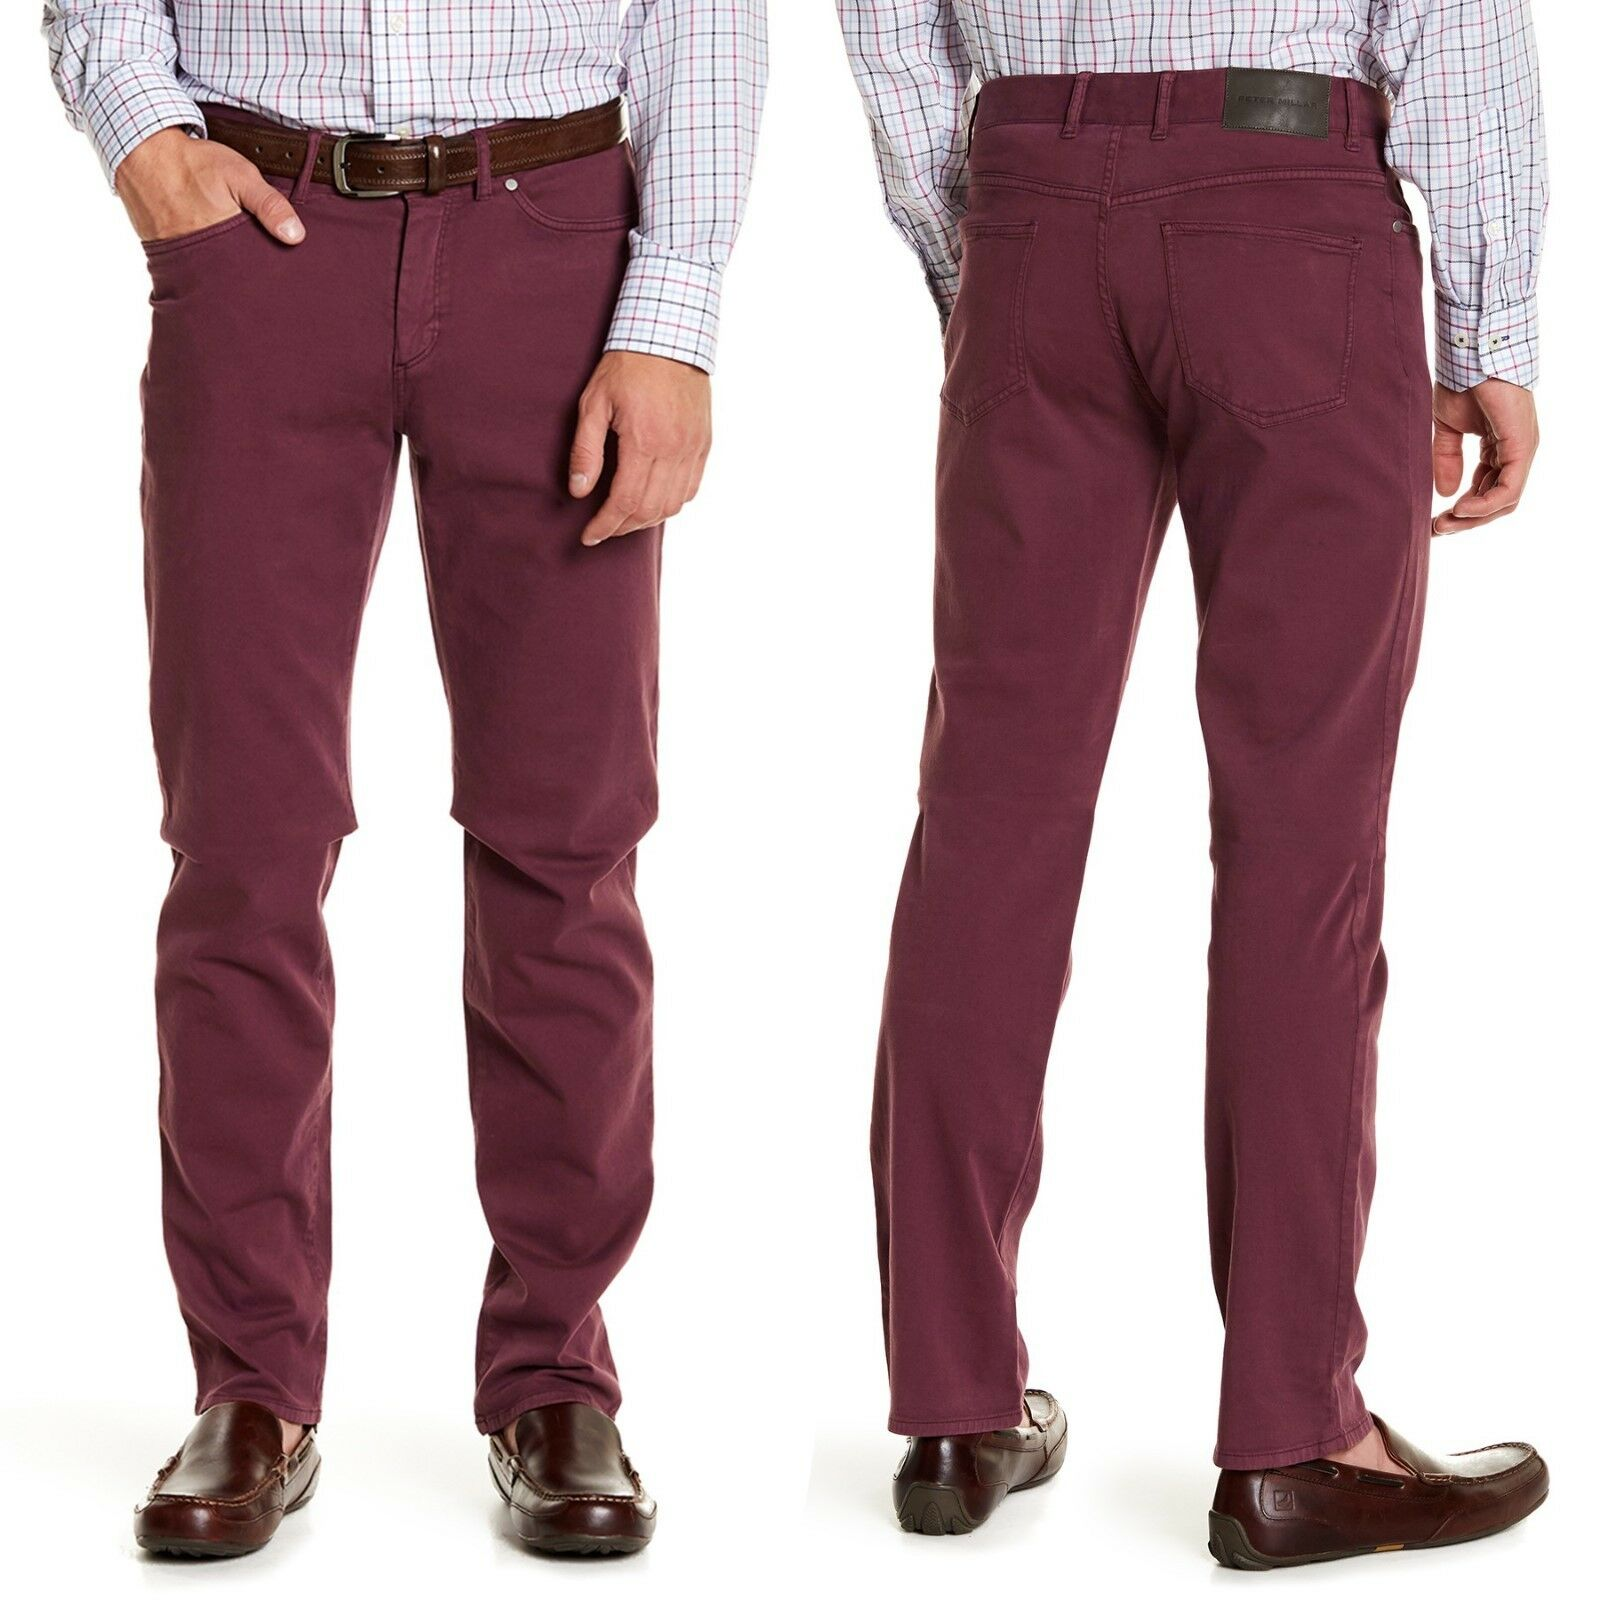 PETER MILLAR Collection Stretch Perfect Twll Tailored Fit Pants 32X33  NWT